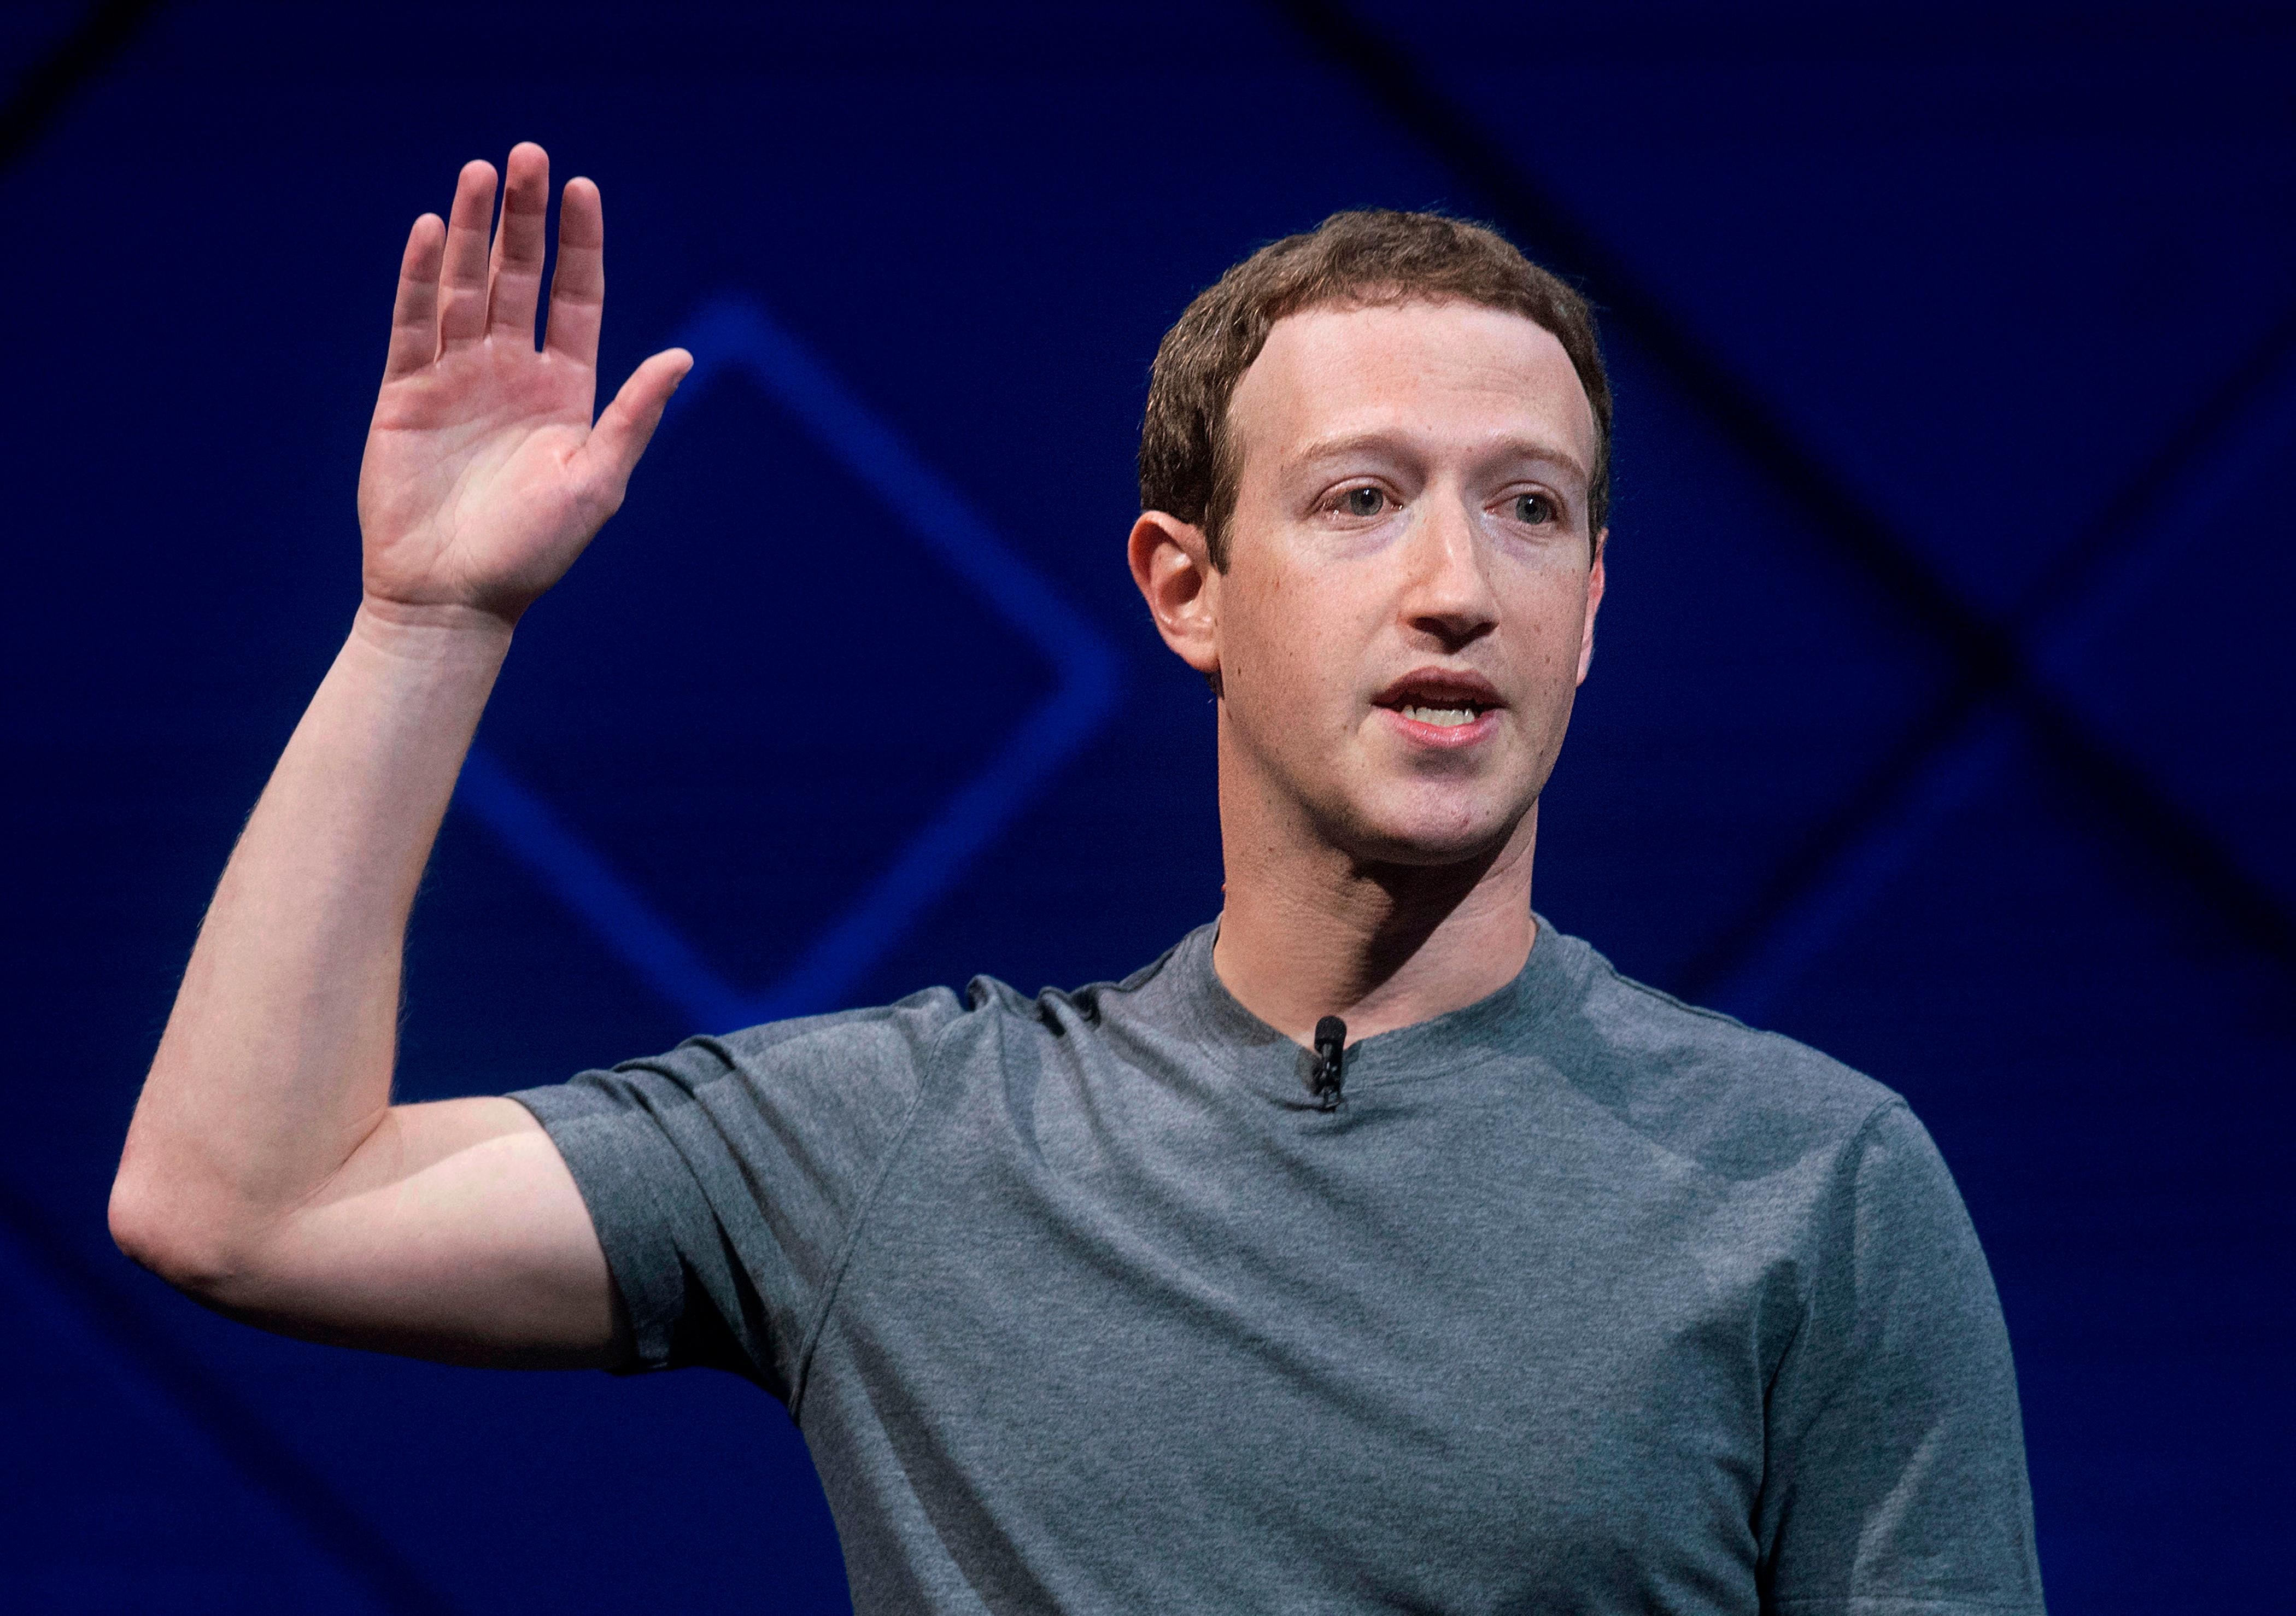 Some Facebook quizzes were designed to steal your data, lawsuit says